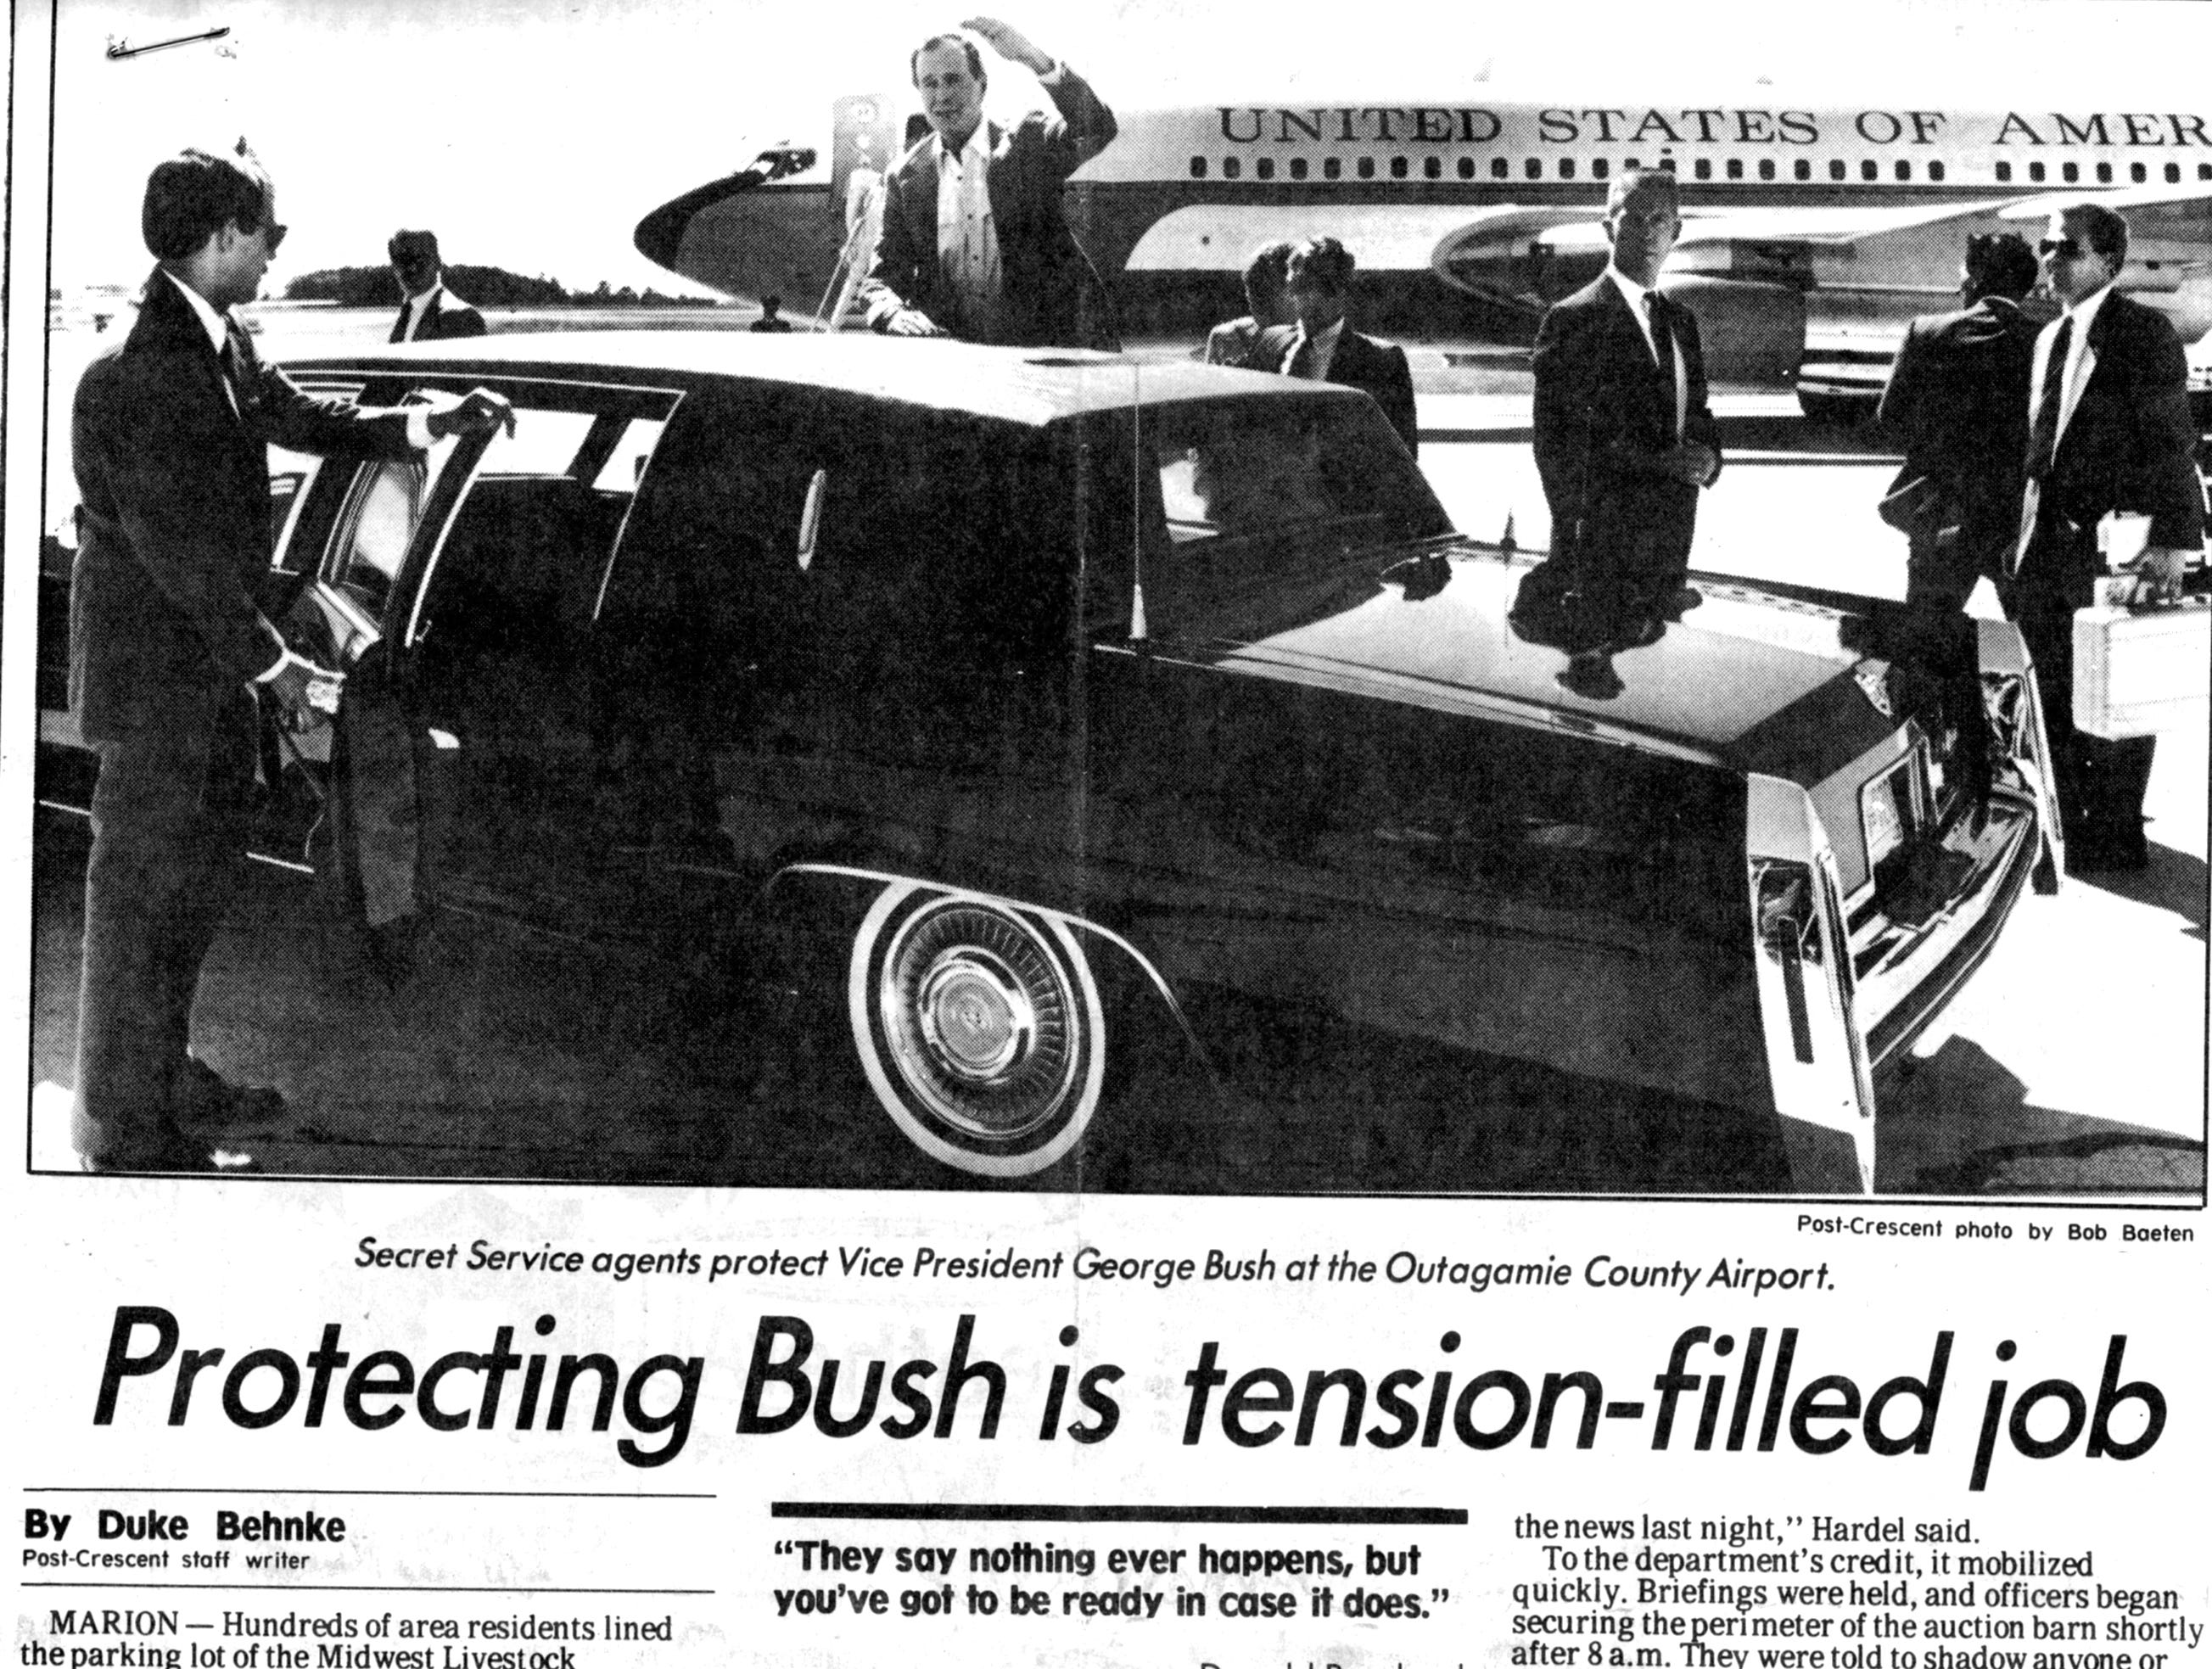 June 30, 1988. Protecting Bush is tension-filled job story by Duke Behnke in The Post-Crescent.  Vice President George H. W. Bush was on his way to the Midwest LIvestock Producers auction barn in Marion.